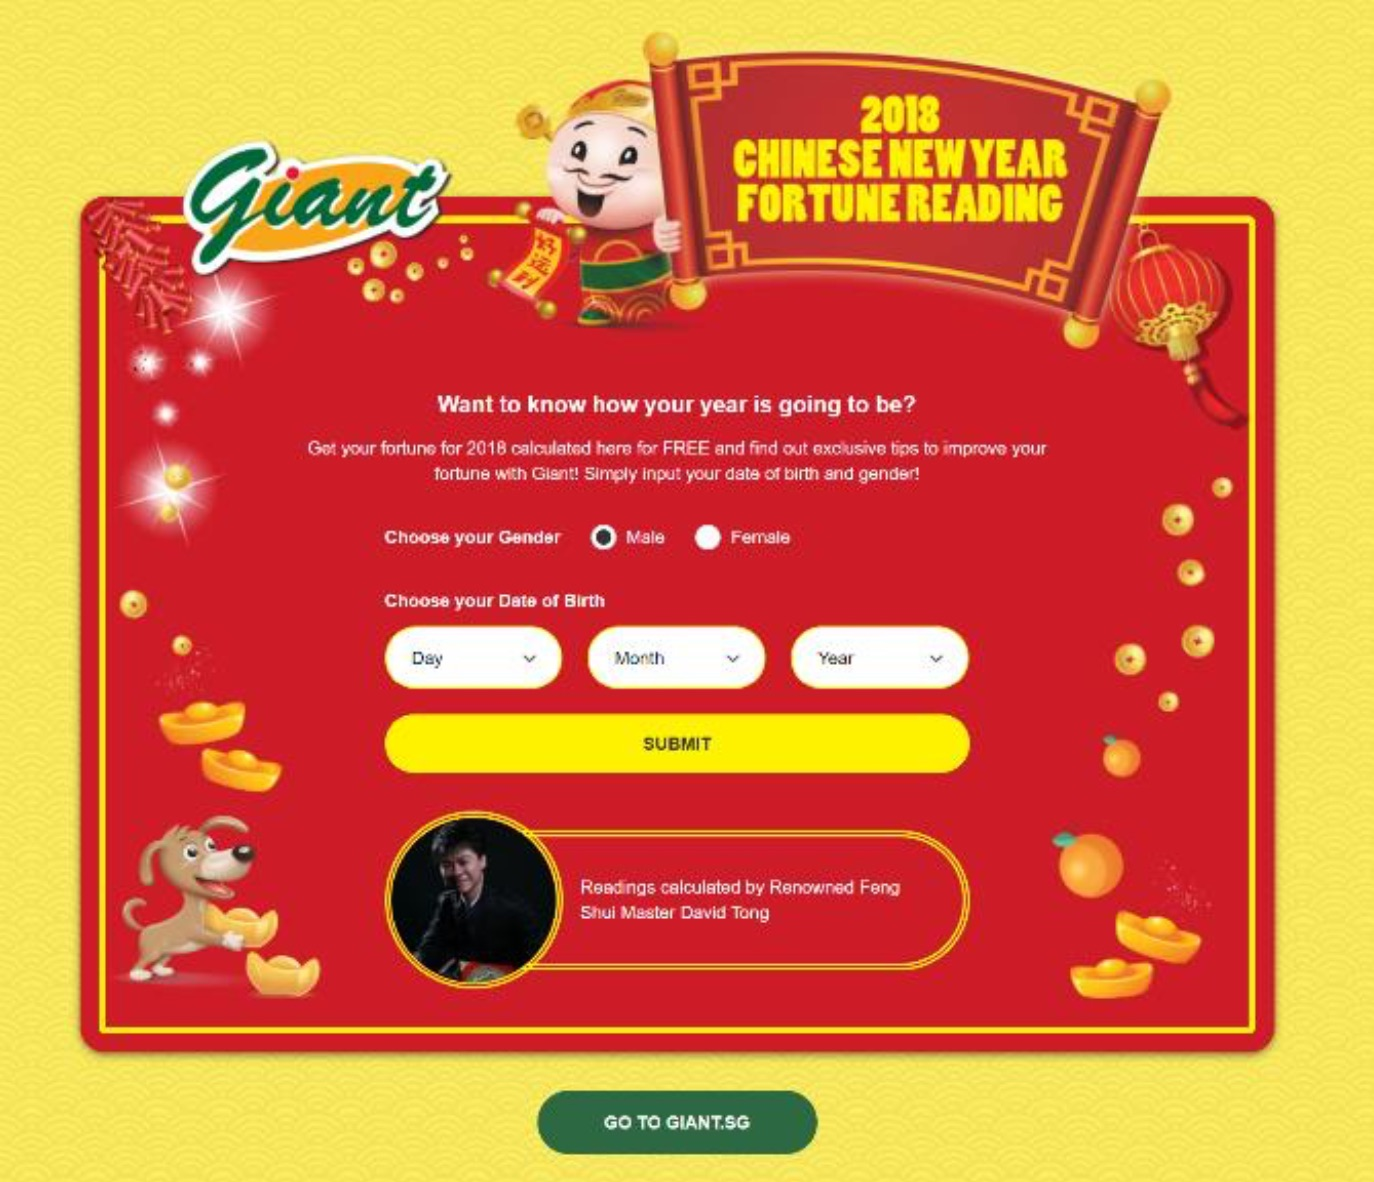 Giant Singapore Events, Promotions & Fengshui Chinese New Year 2018 | Why Not Deals & Promotions